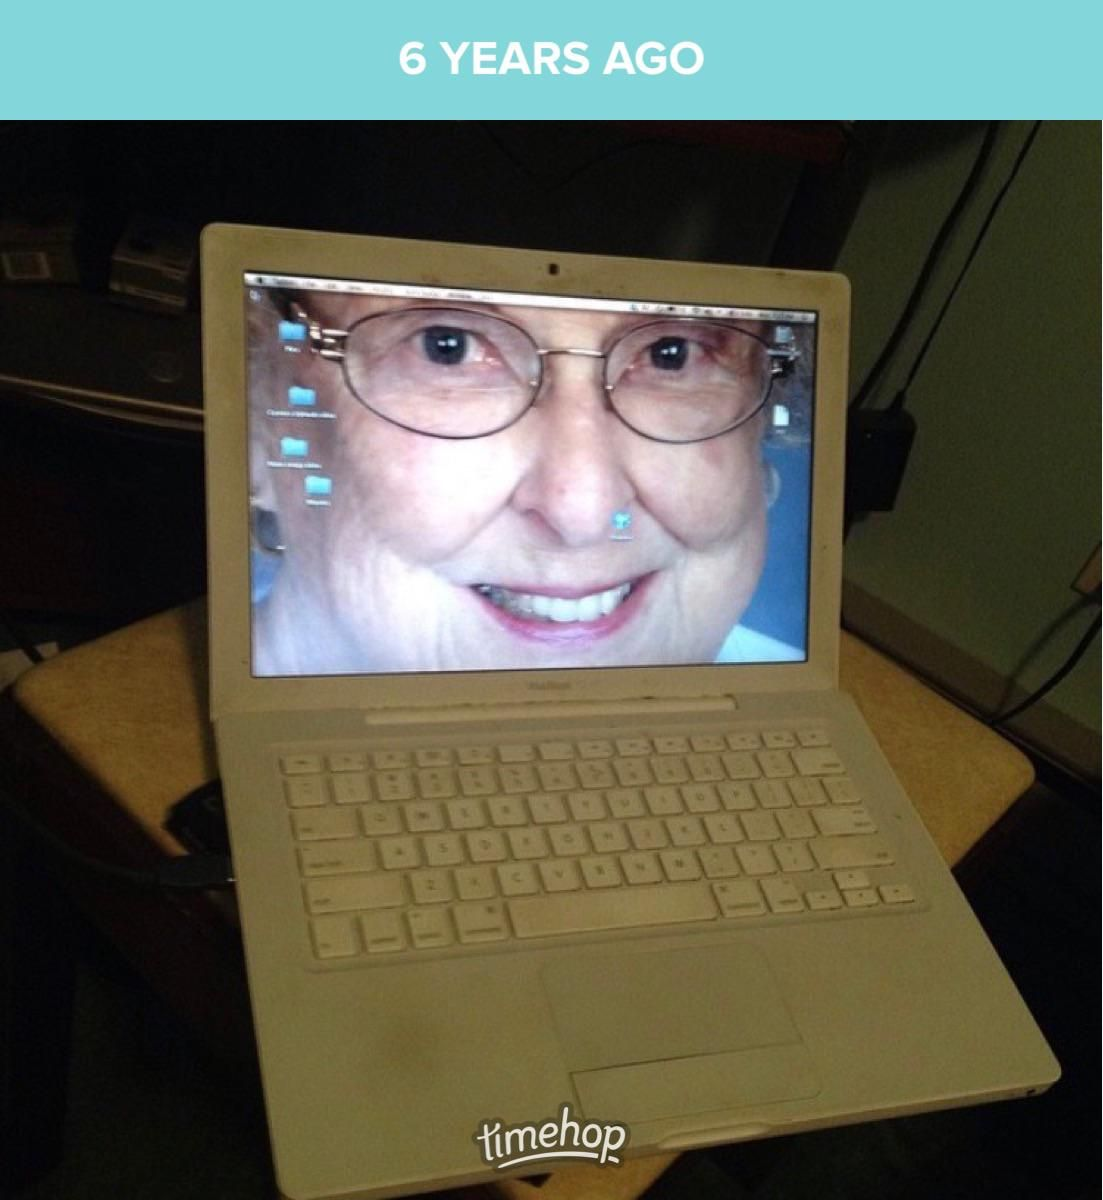 6 years ago today I changed my parents computer background to my Grandmom's face. They couldn't figure out how to change it, so it lasted up until it died last year